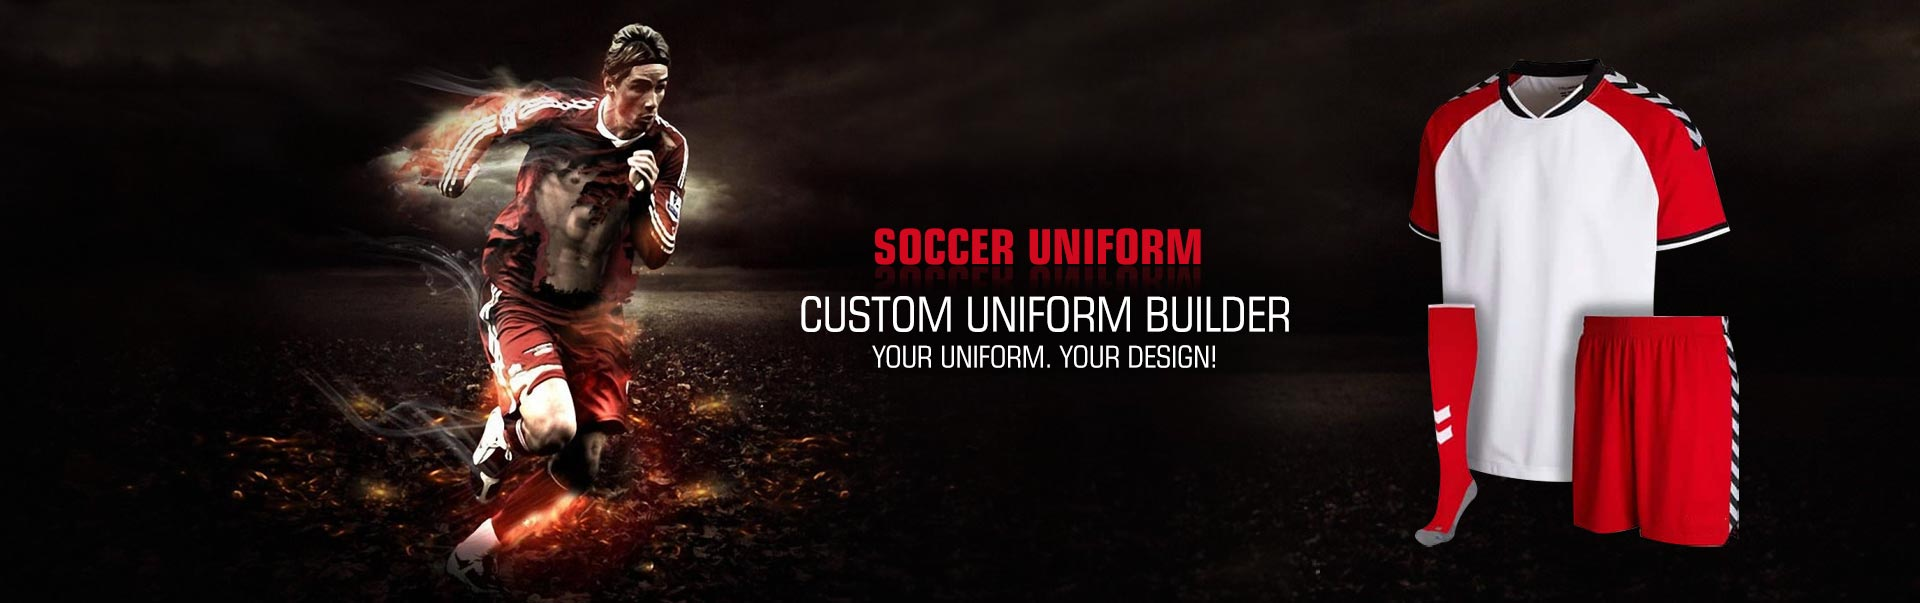 Soccer Uniform Wholesaler, Suppliers in Provo